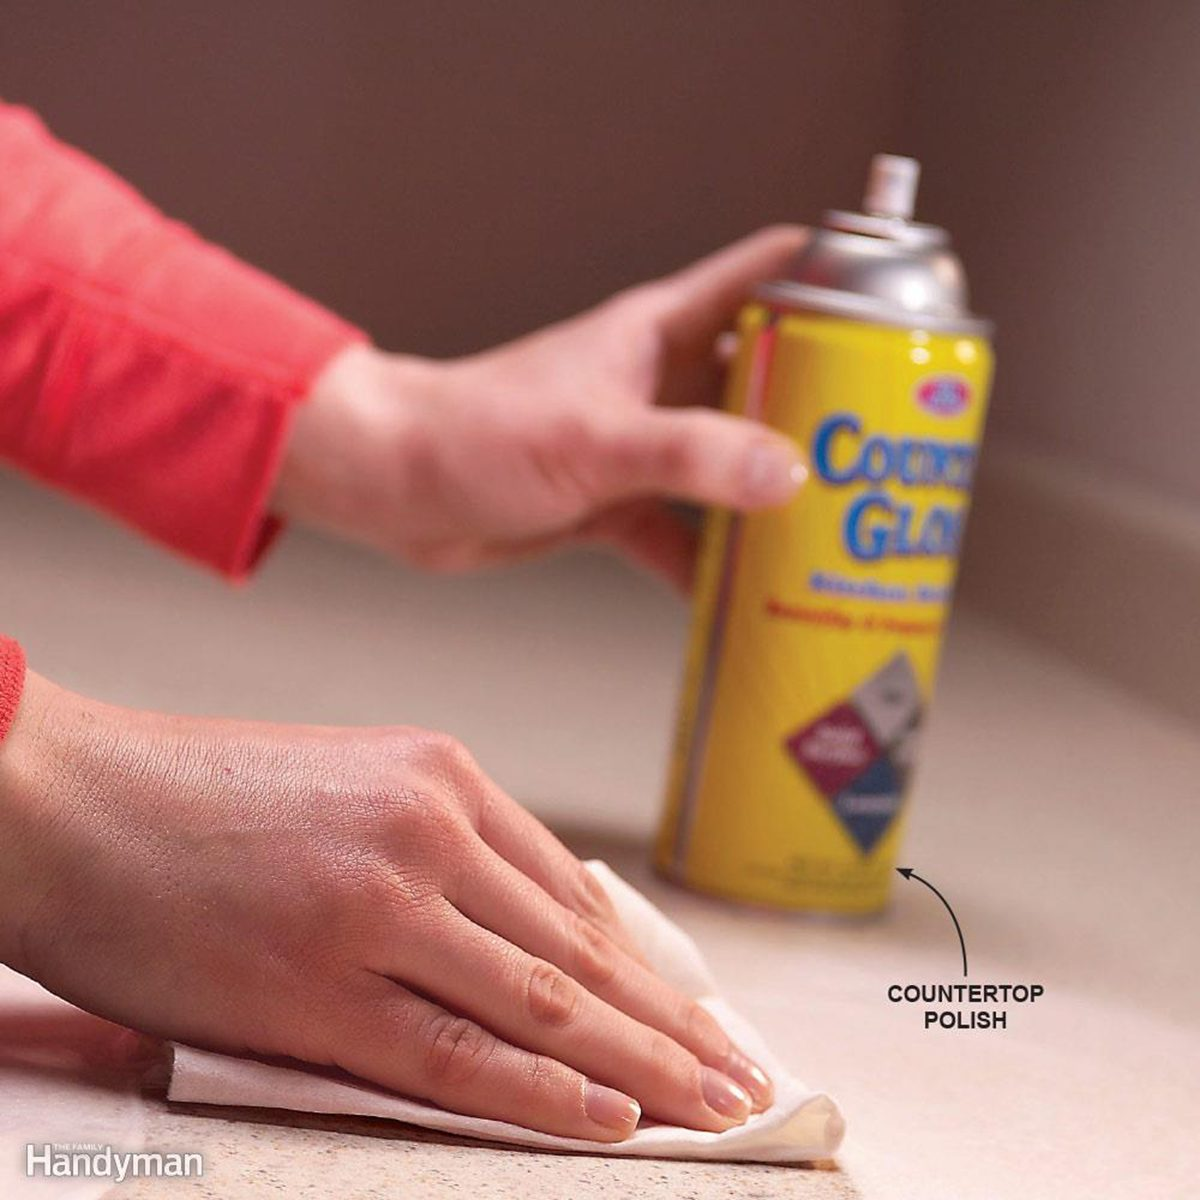 Polishing countertops